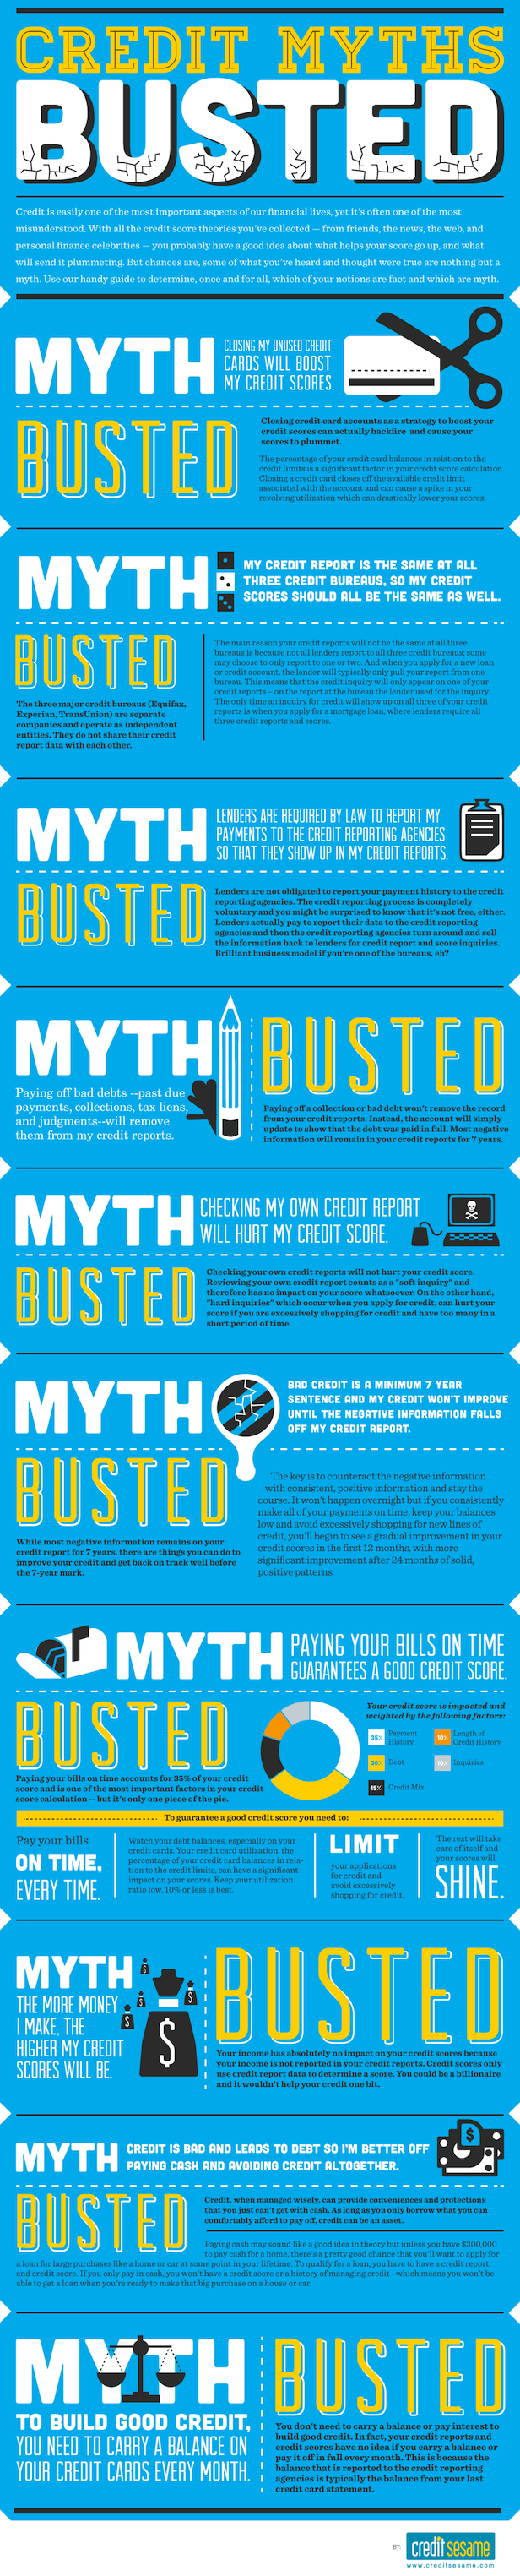 Credit MythBusters - The authors have compiled a list of myths and half-truths and common misconceptions about credit scores. Outstanding!